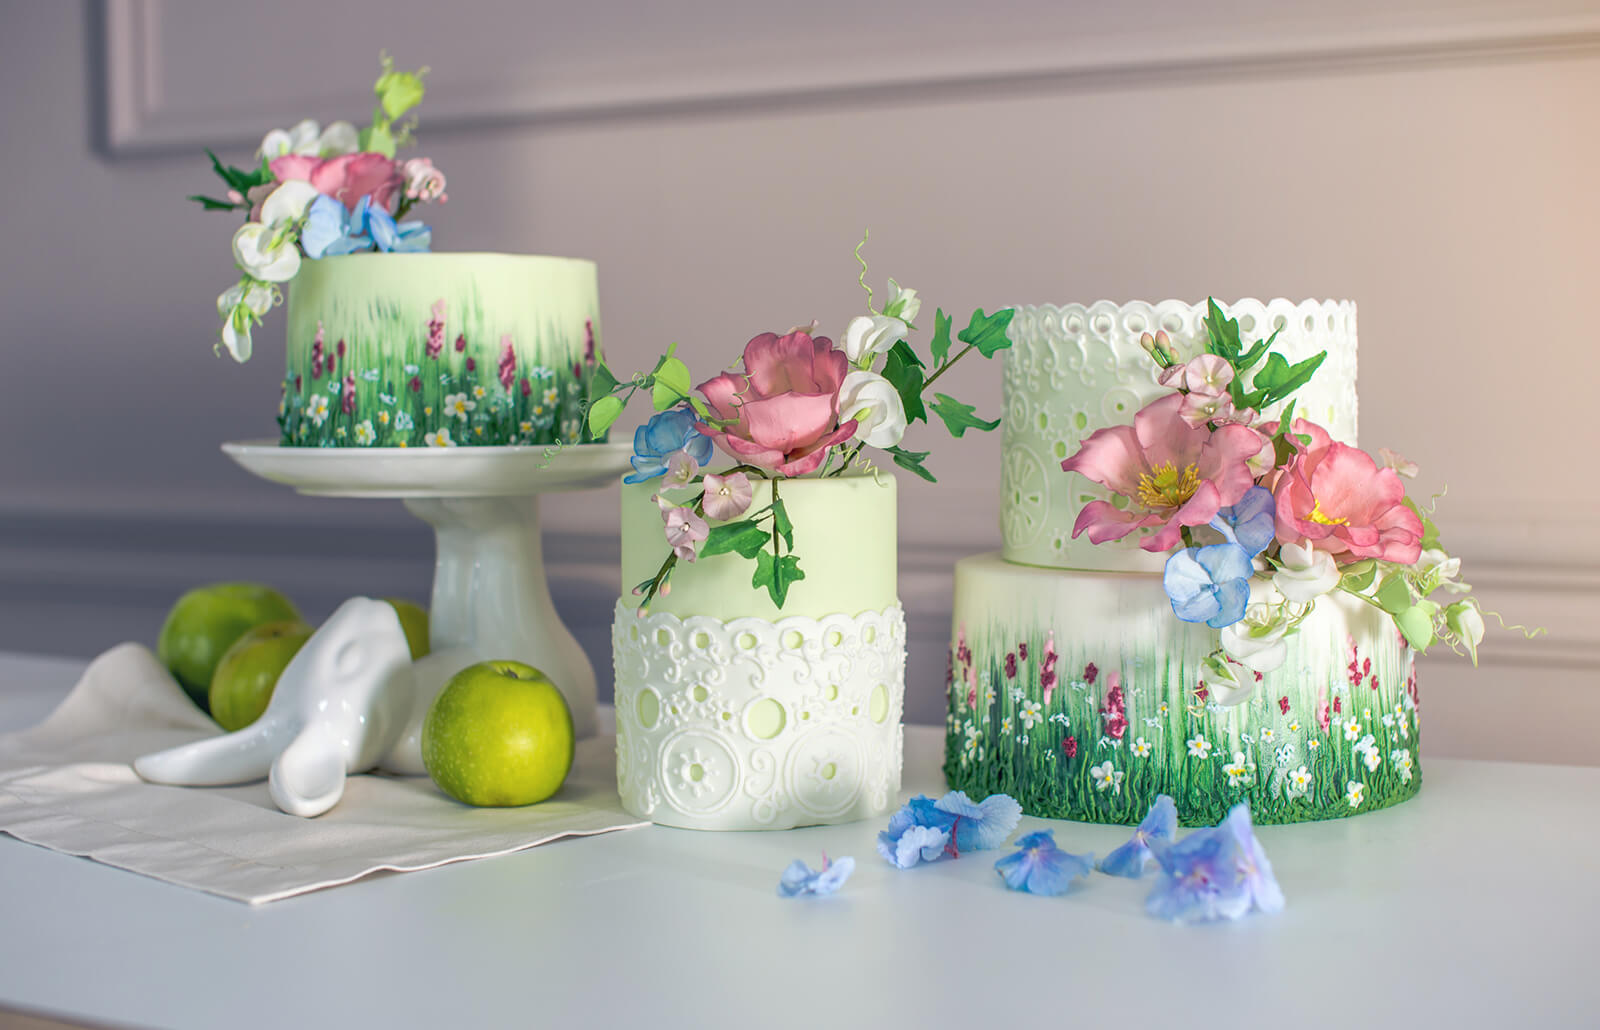 Garden Wedding Cake Ideas | LoveToKnow